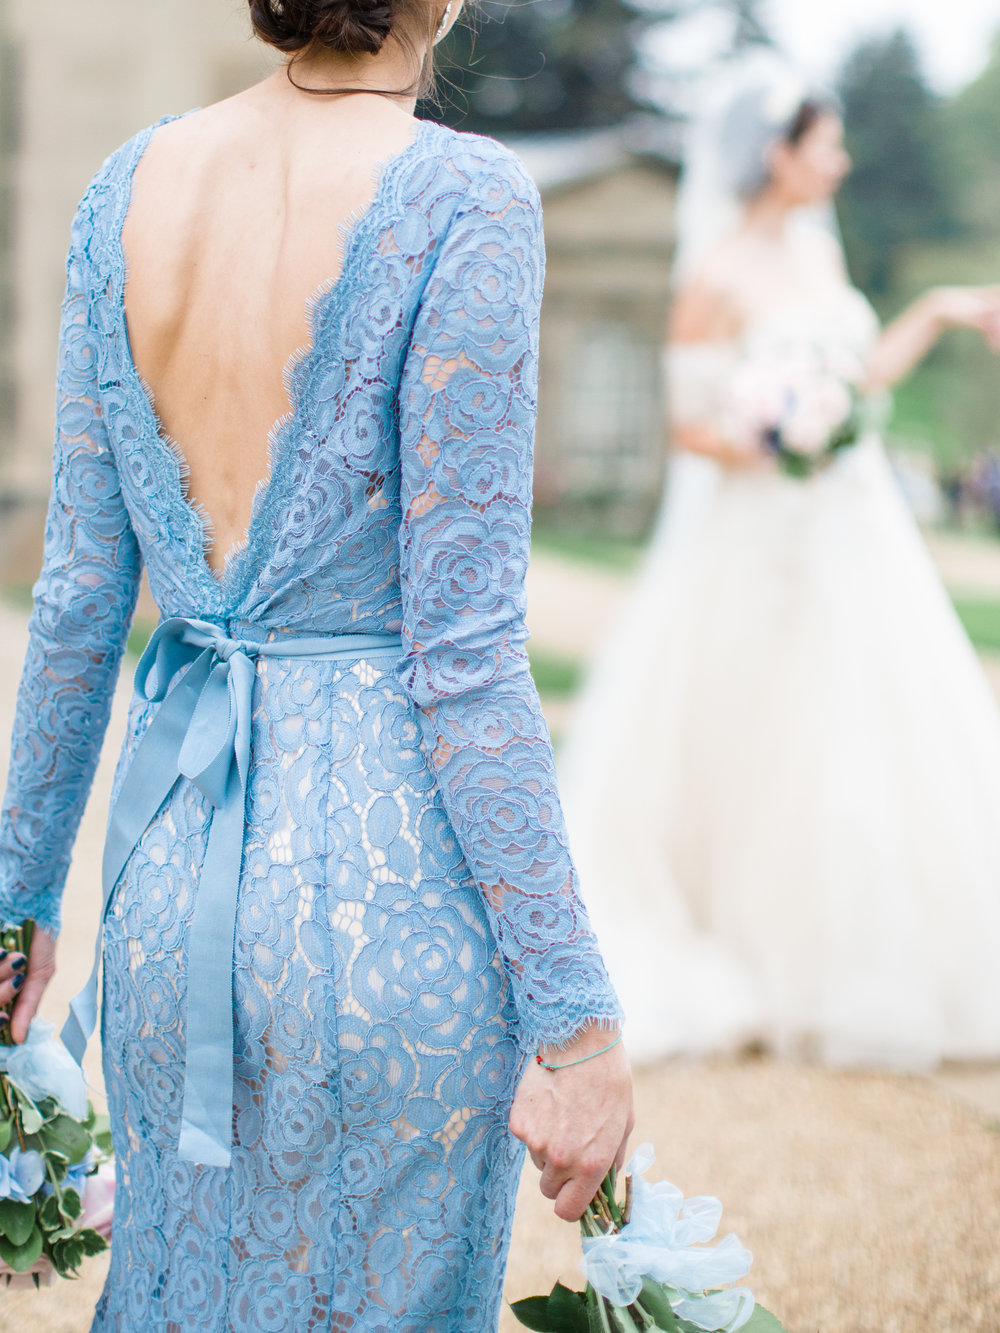 Alara gown at Co-Founder Louie's wedding. Photo -  Amy O'Boyle